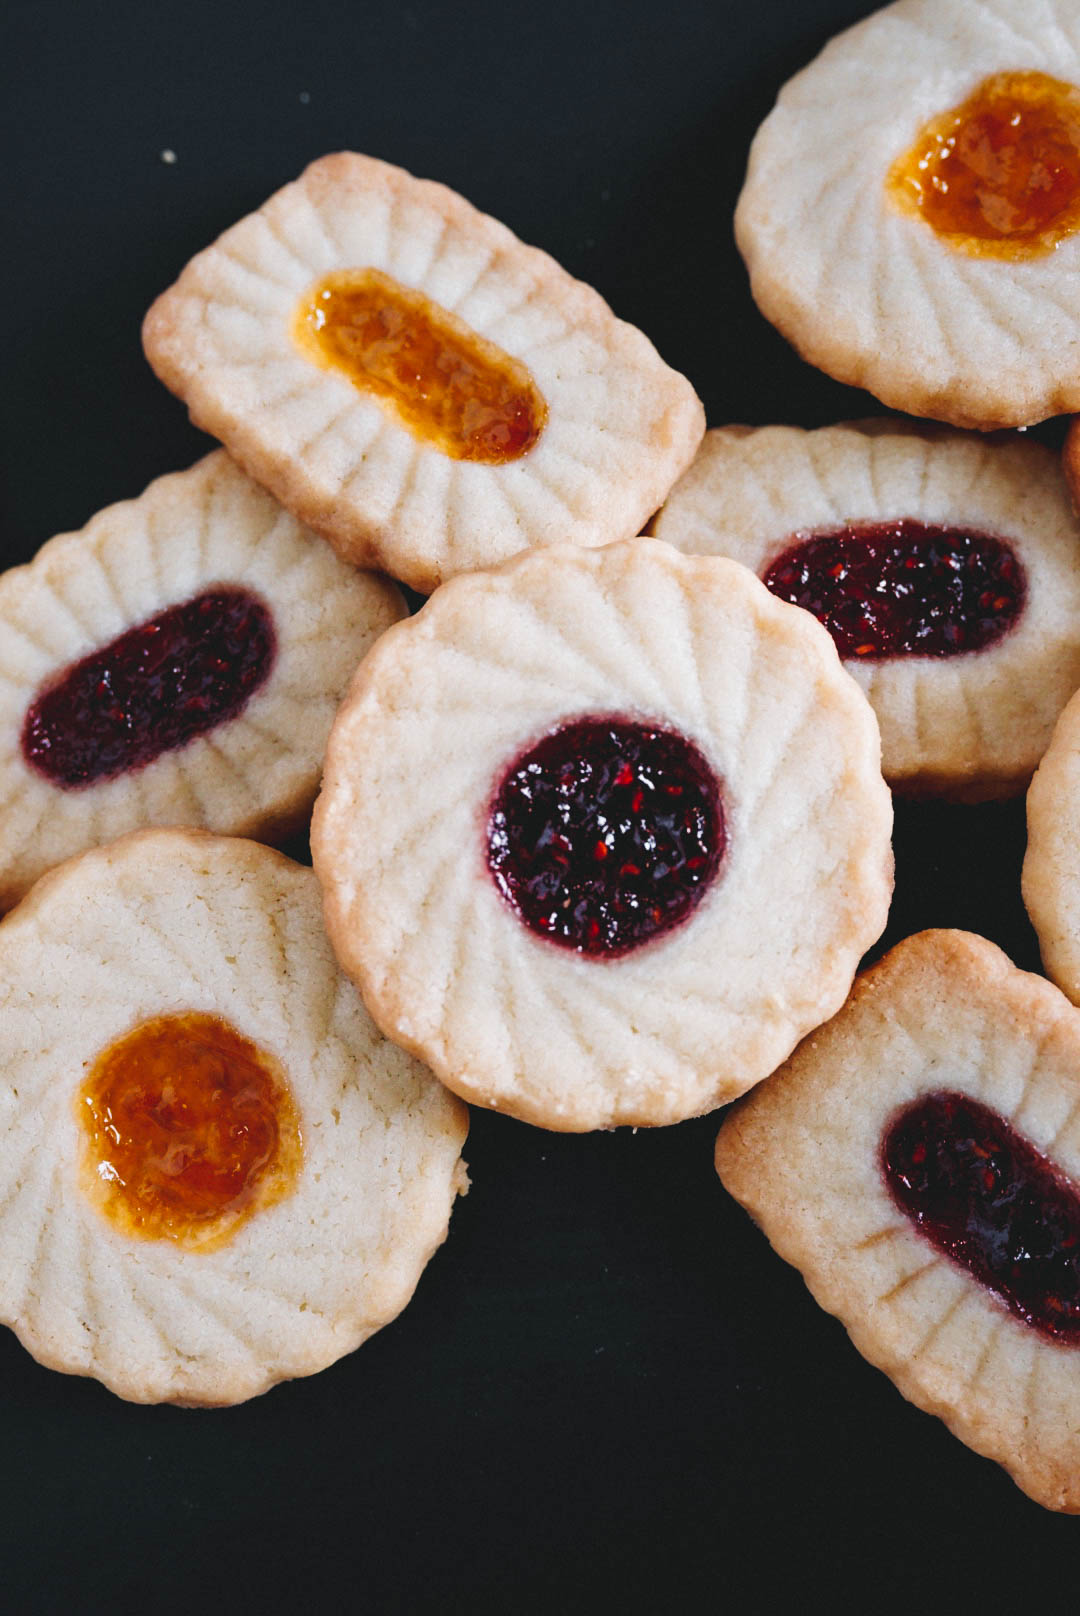 Round and rectangular thumbprint cookies on black backdrop